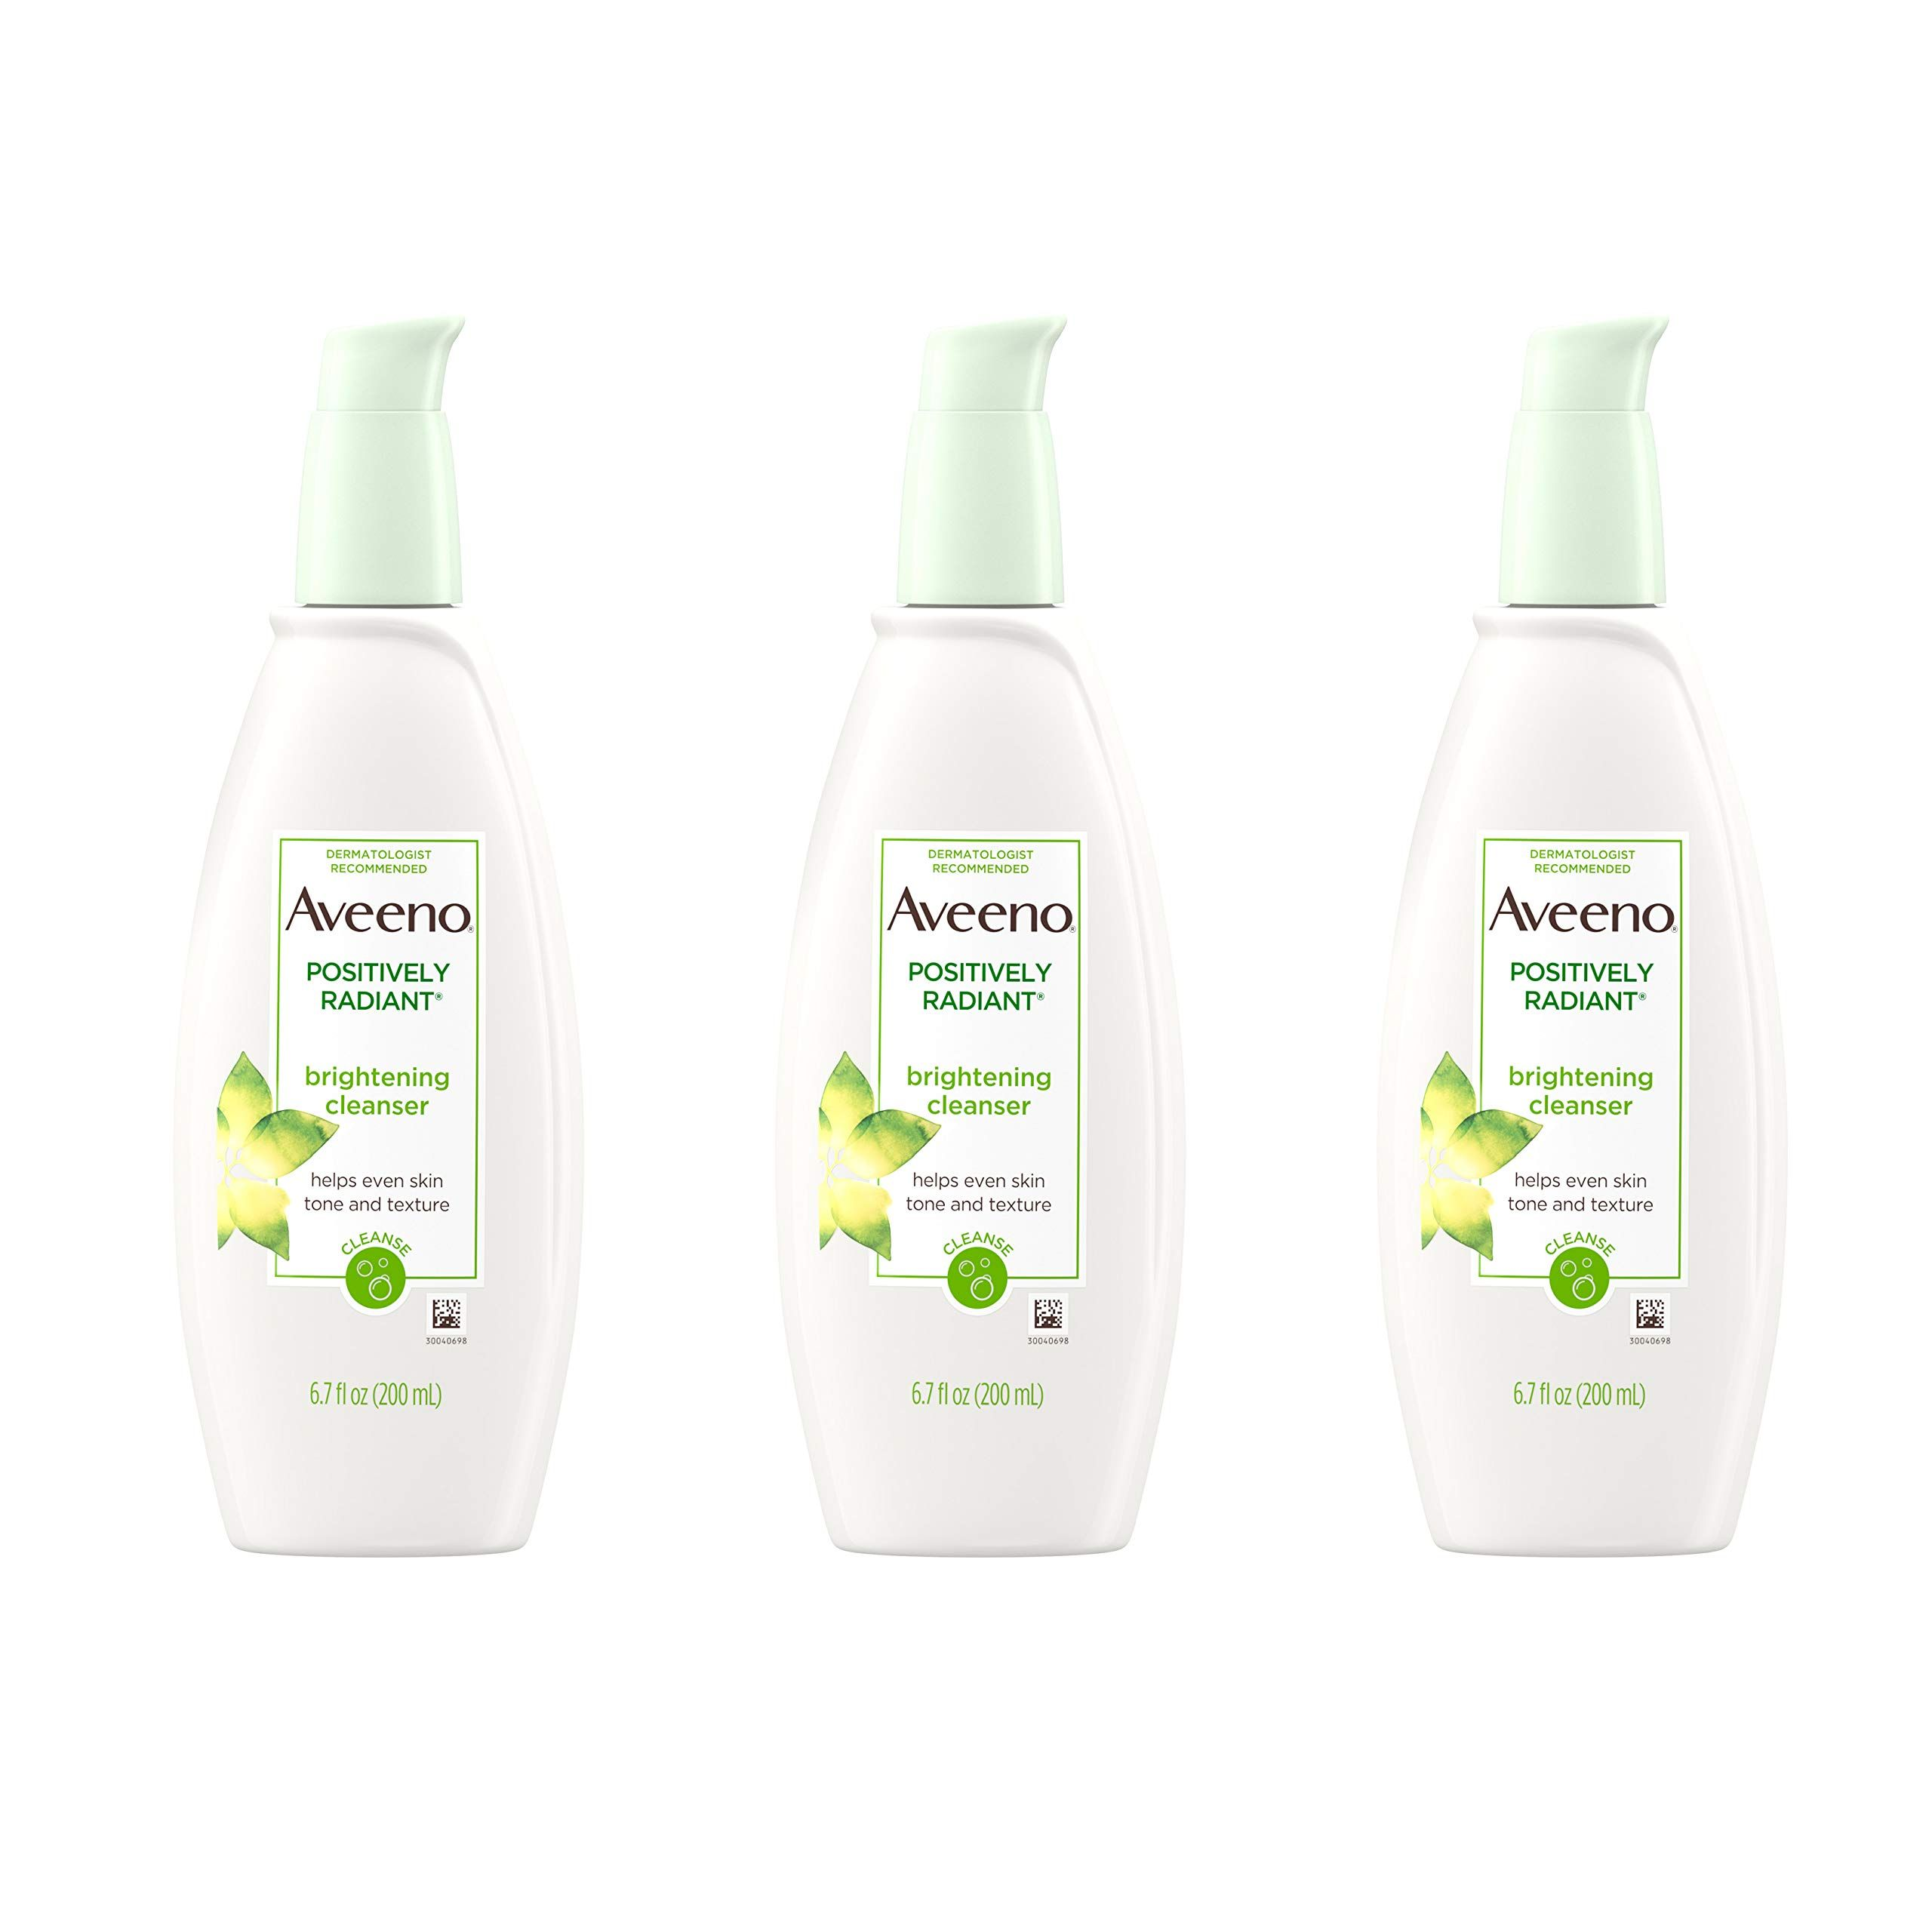 Aveeno Positively Radiant Brightening Facial Cleanser for